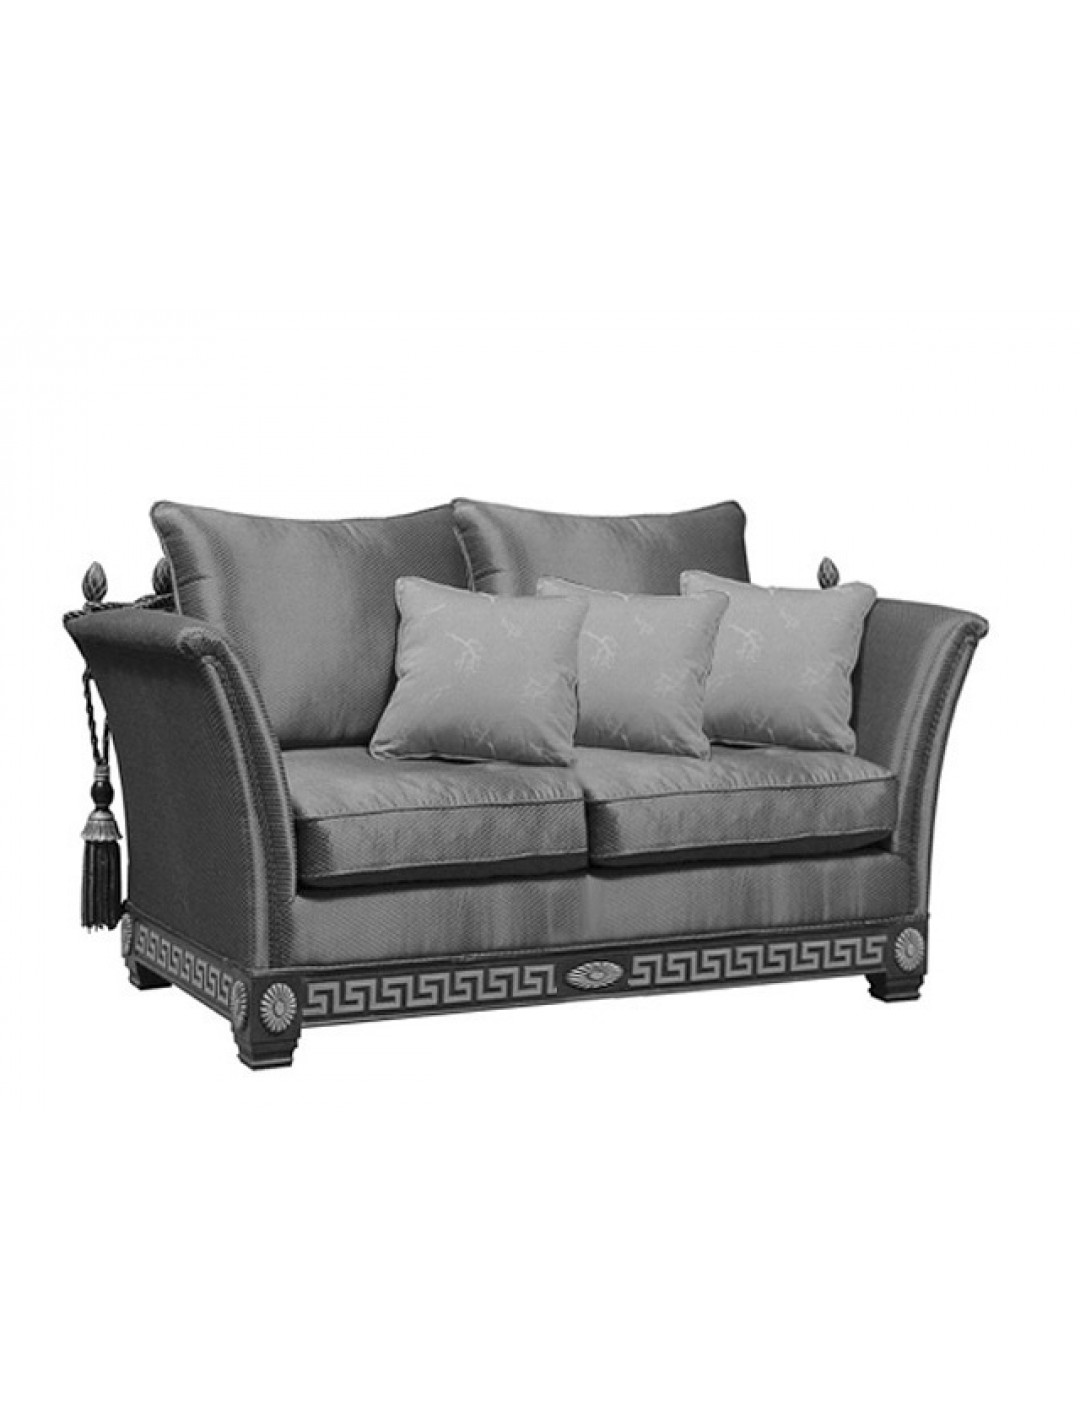 ELITE-EGEO 2-SEAT SOFA,3 (45X45 CM) PILLOWS, C.O.M.